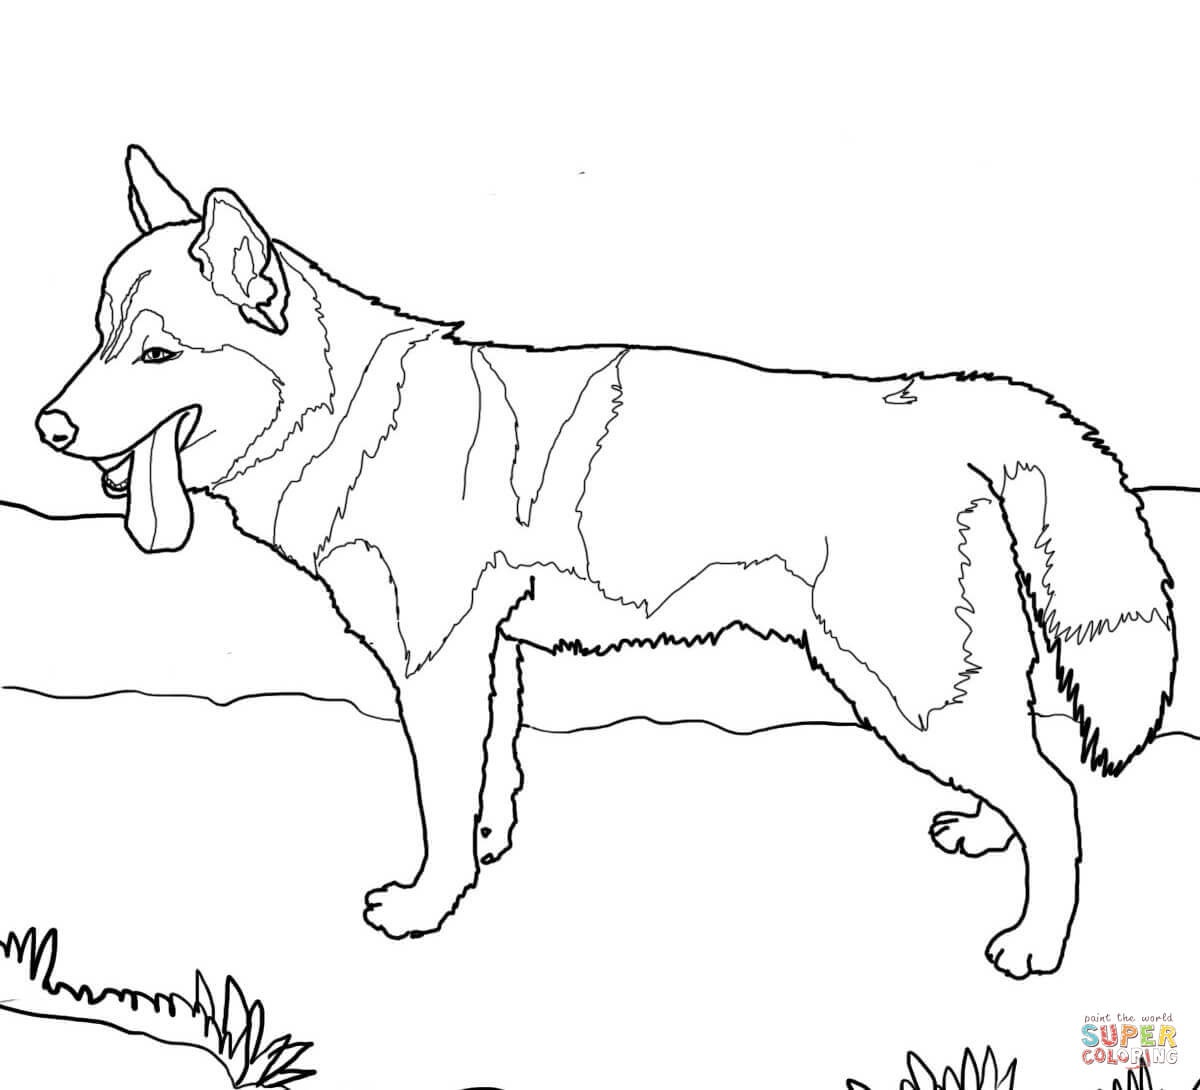 Coloring Pages Of Dogs - K 9 Police Dog Coloring Page Free Printable - Free Printable Dog Coloring Pages